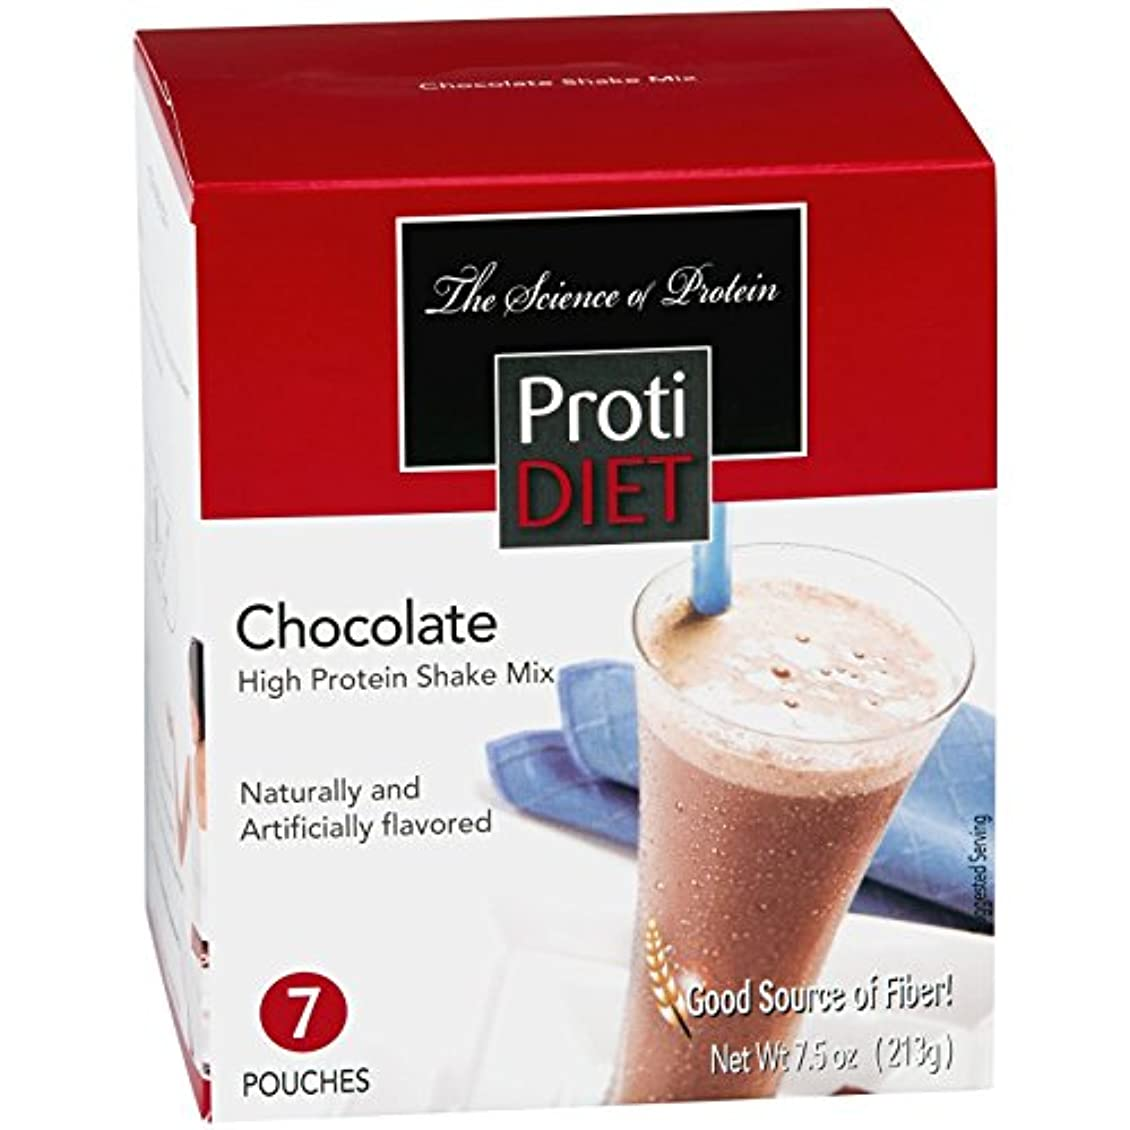 つぶやきゴミ冒険Proti Diet Chocolate Shake (7 pouches per box) Net Wt 7.5oz (213g) by Protidiet [並行輸入品]